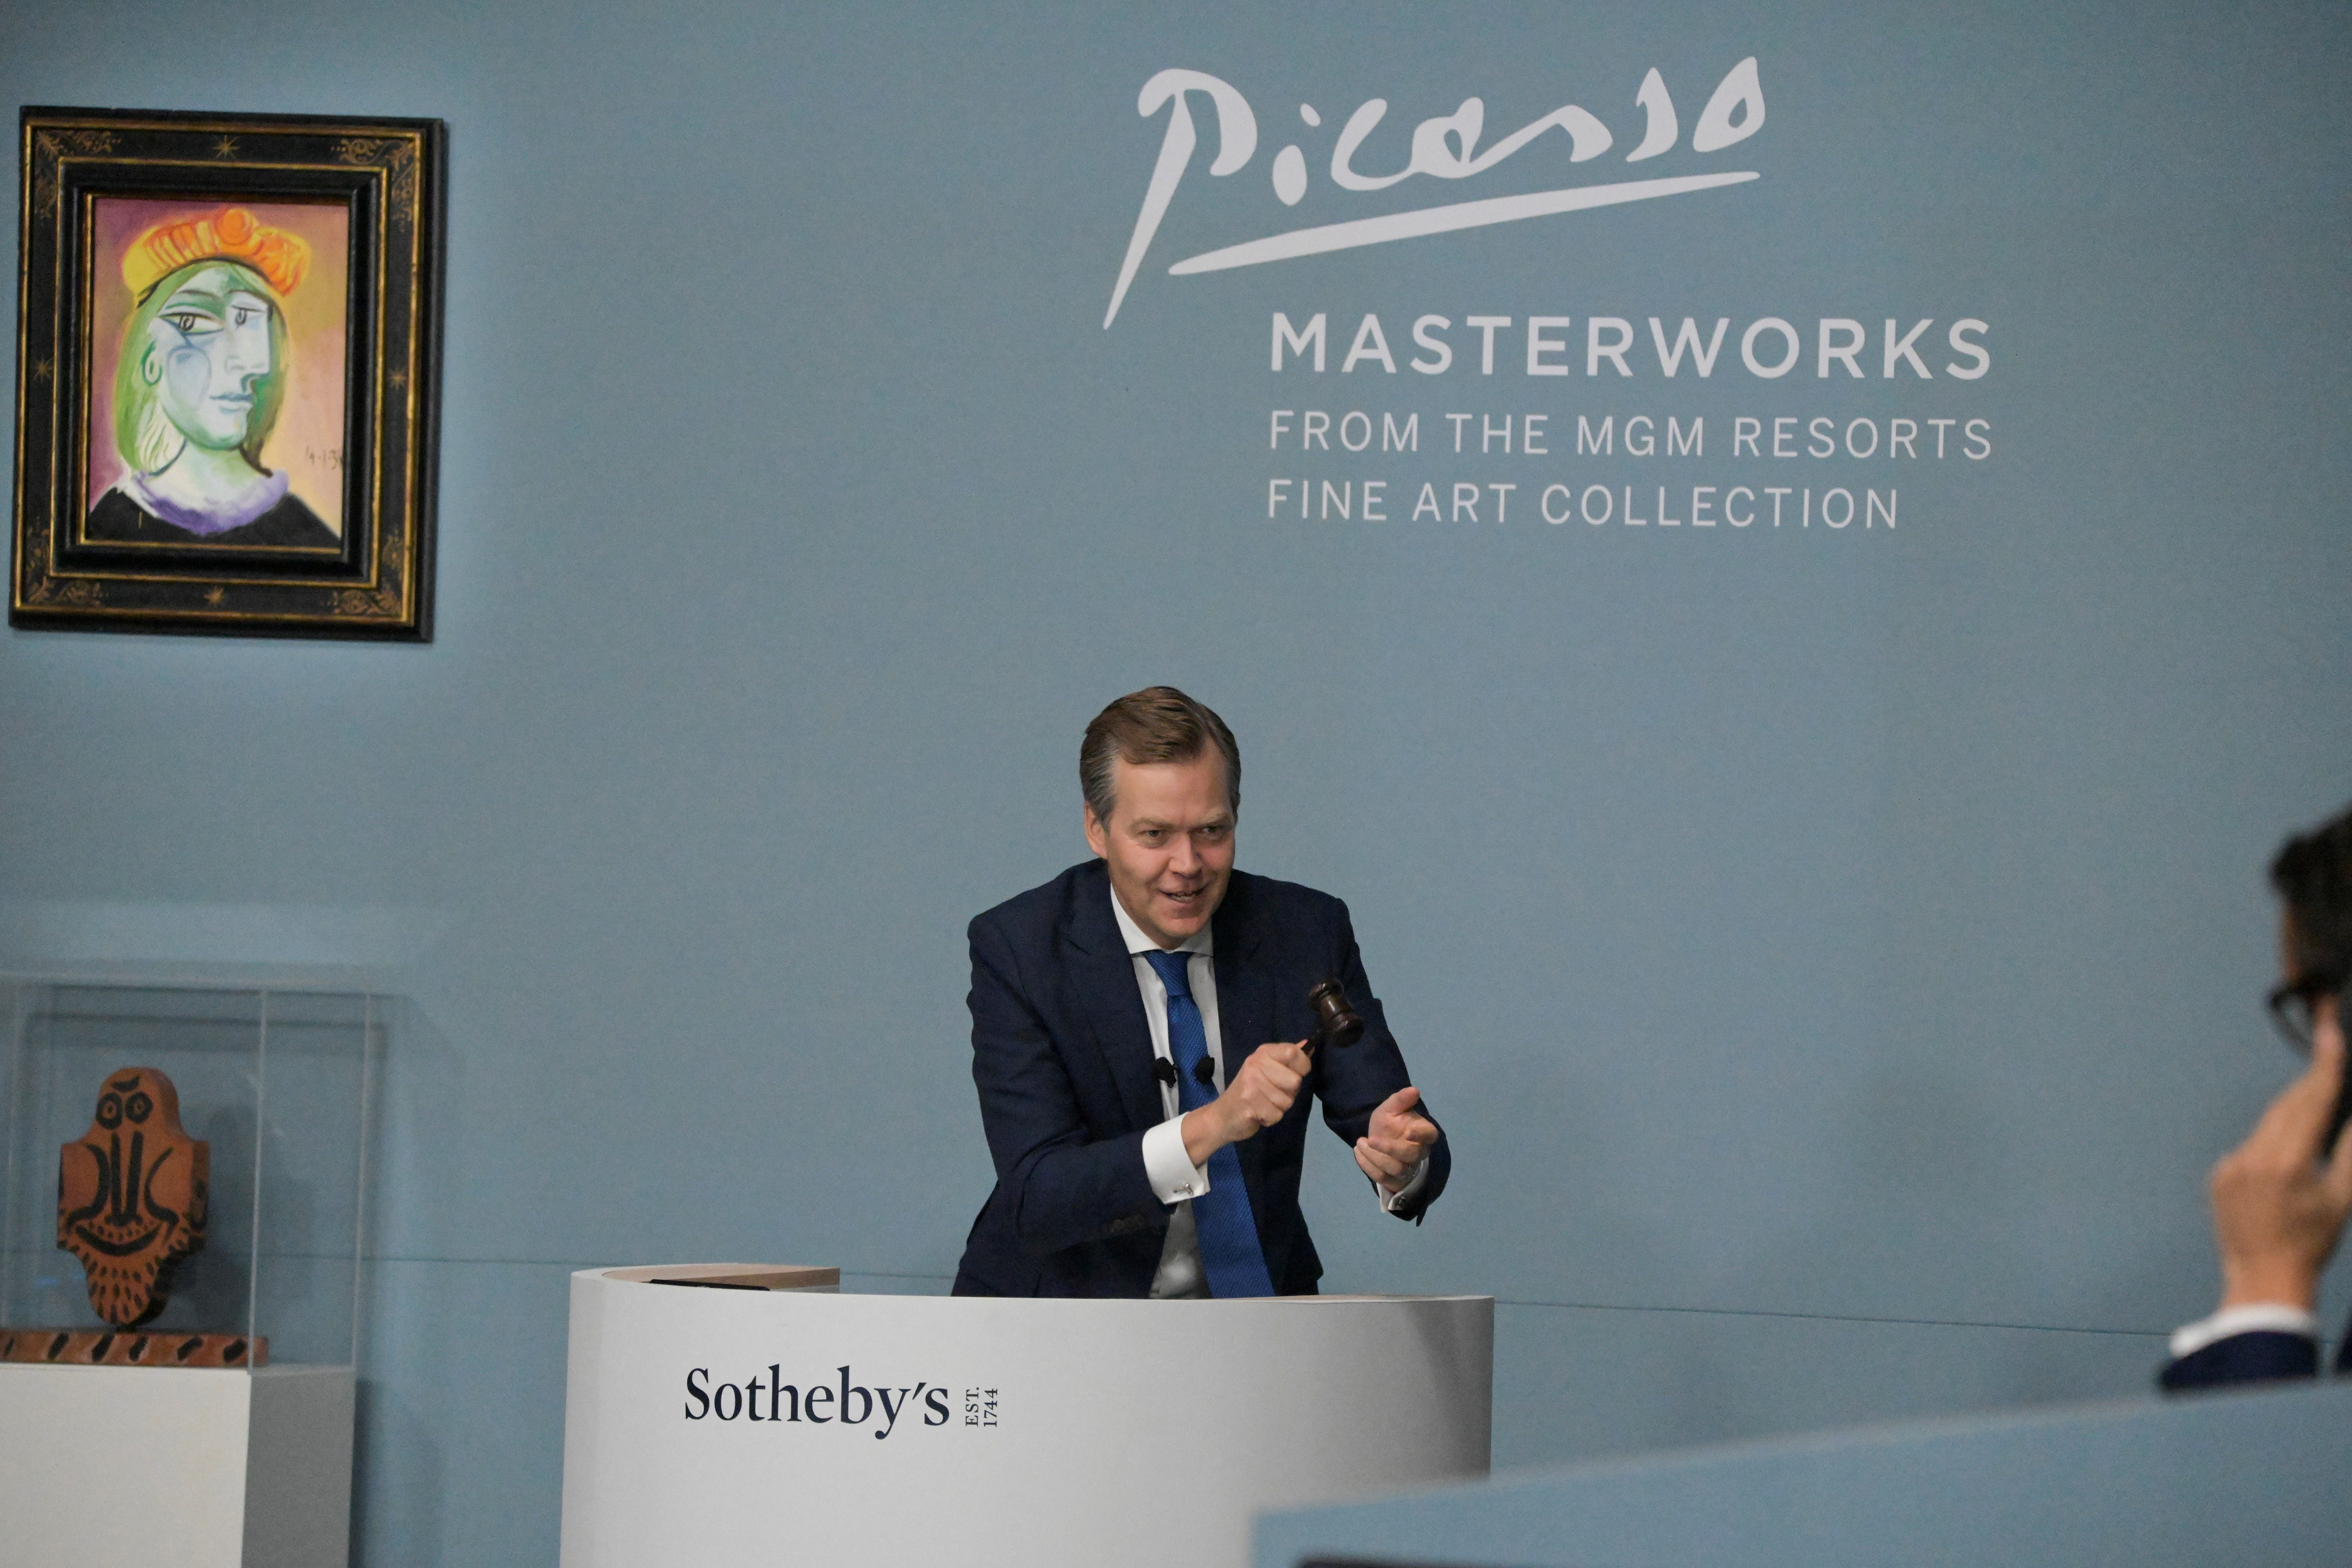 Las Vegas auction sells Picasso paintings for over $100 million